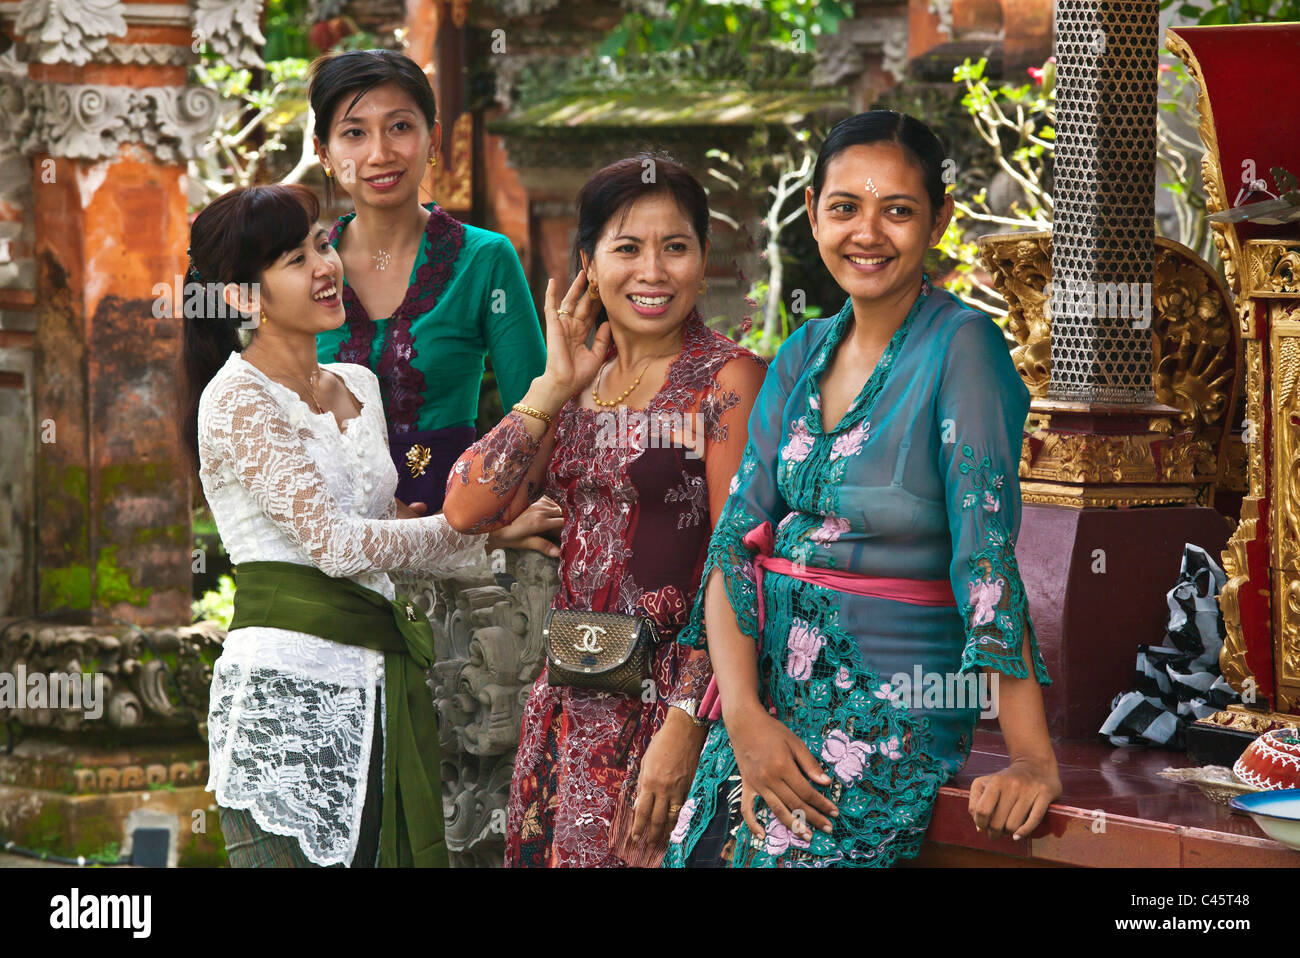 BALINESE WOMEN gather at PURA TAMAN SARASWATI during the GALUNGAN FESTIVAL - UBUD, BALI, INDONESIA - Stock Image